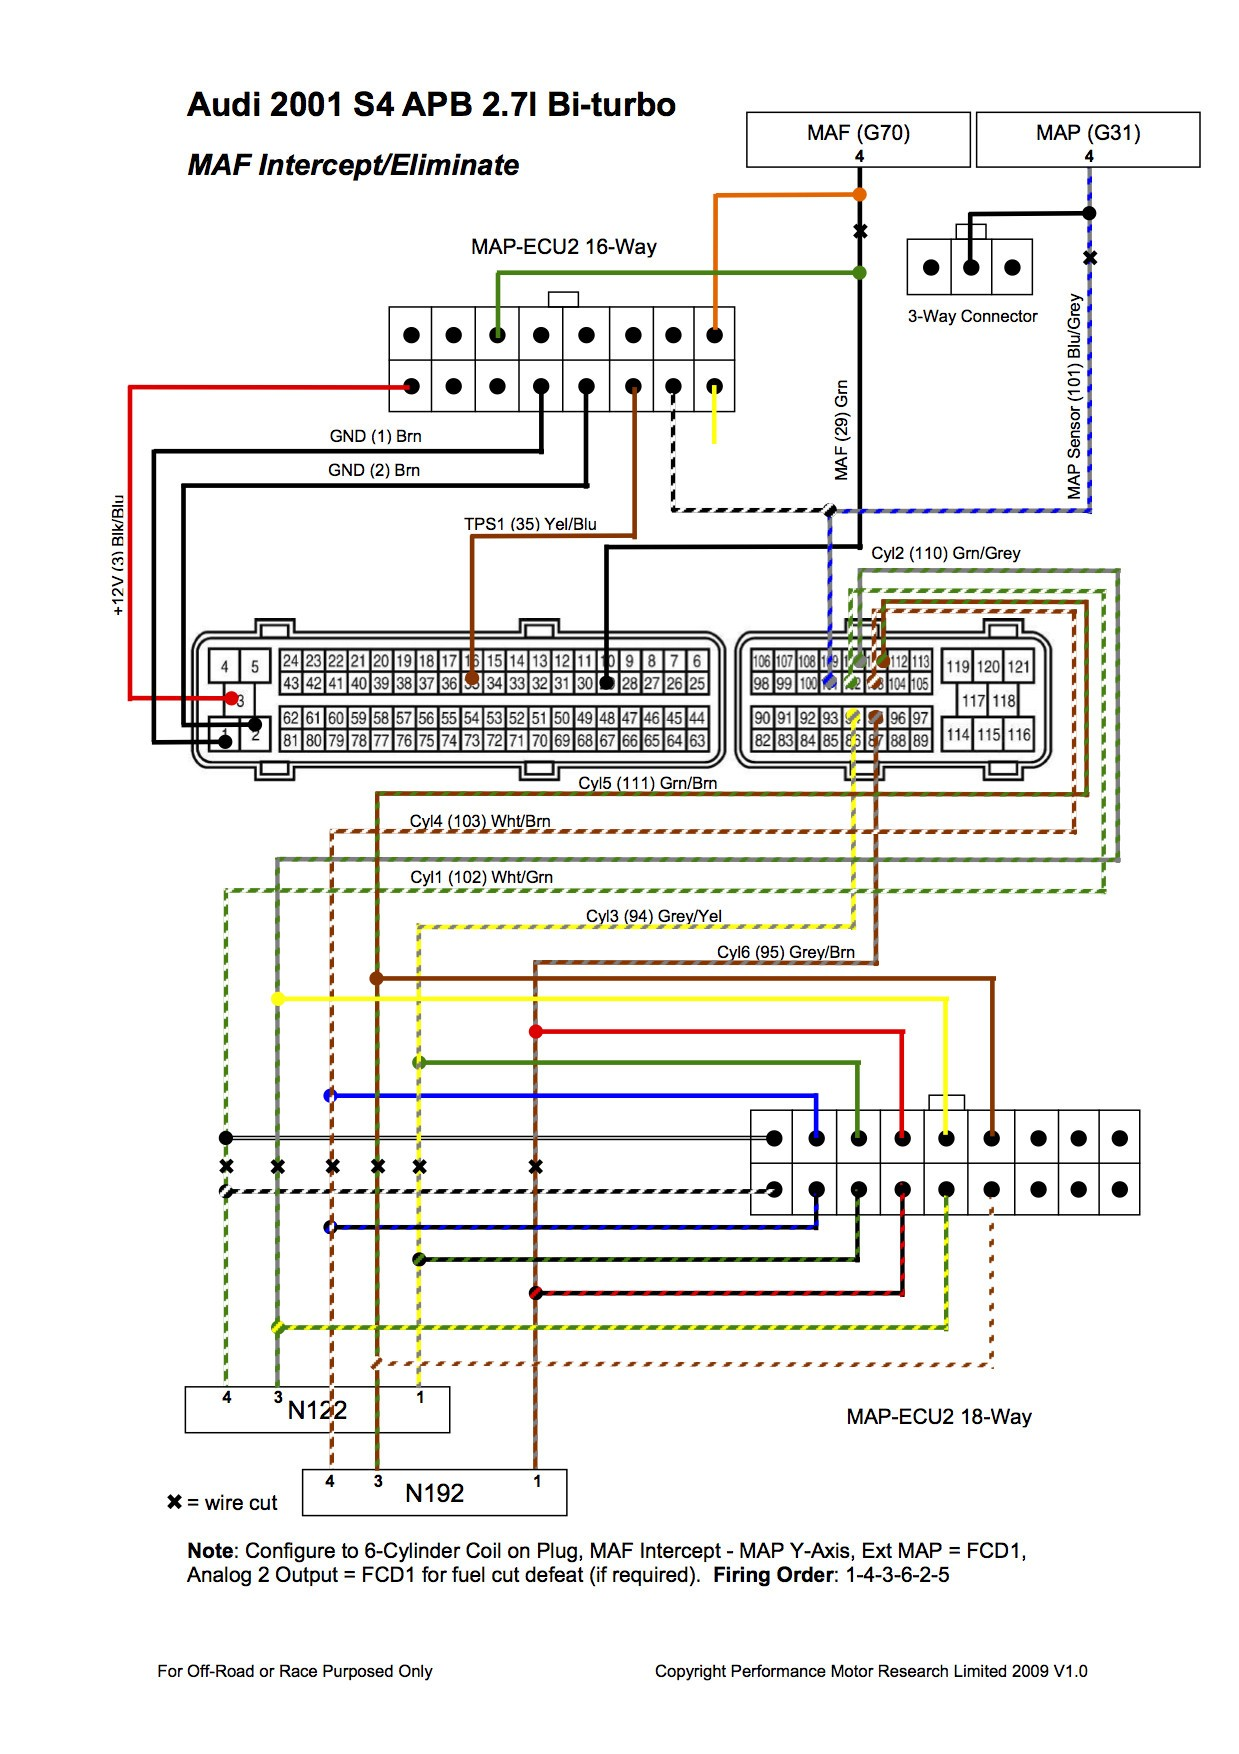 94 toyota car stereo wiring diagram - fusebox and wiring diagram  component-drive - component-drive.parliamoneassieme.it  diagram database